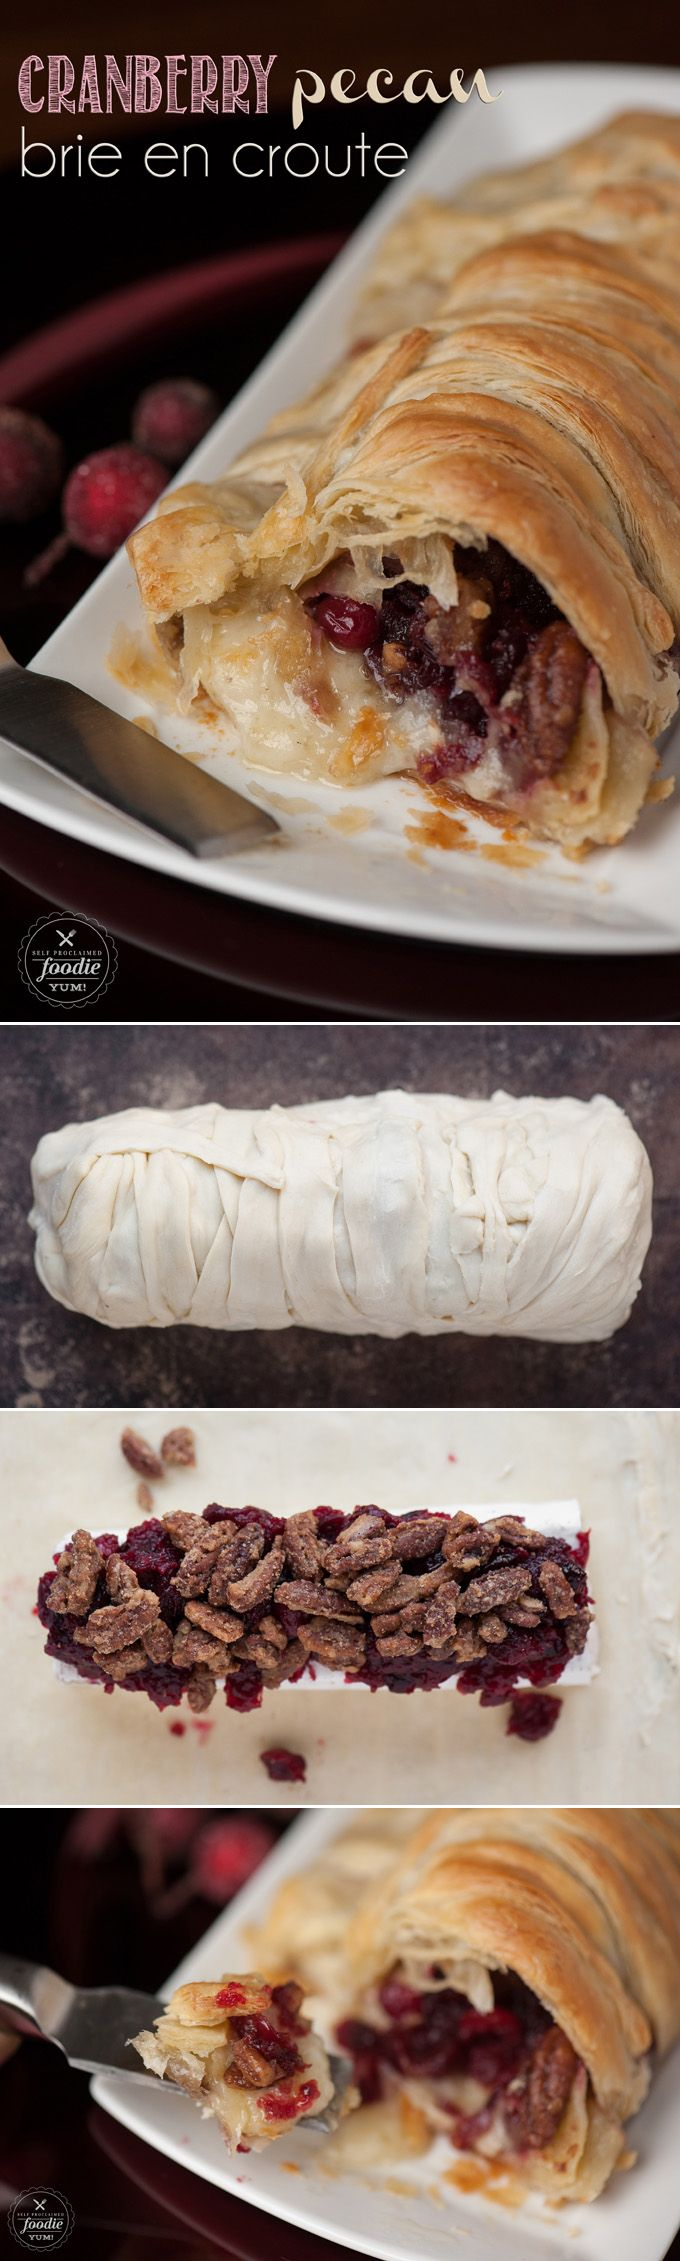 Brie En Croute on Pinterest | Brie, Baked Brie and Brie In Puff Pastry ...